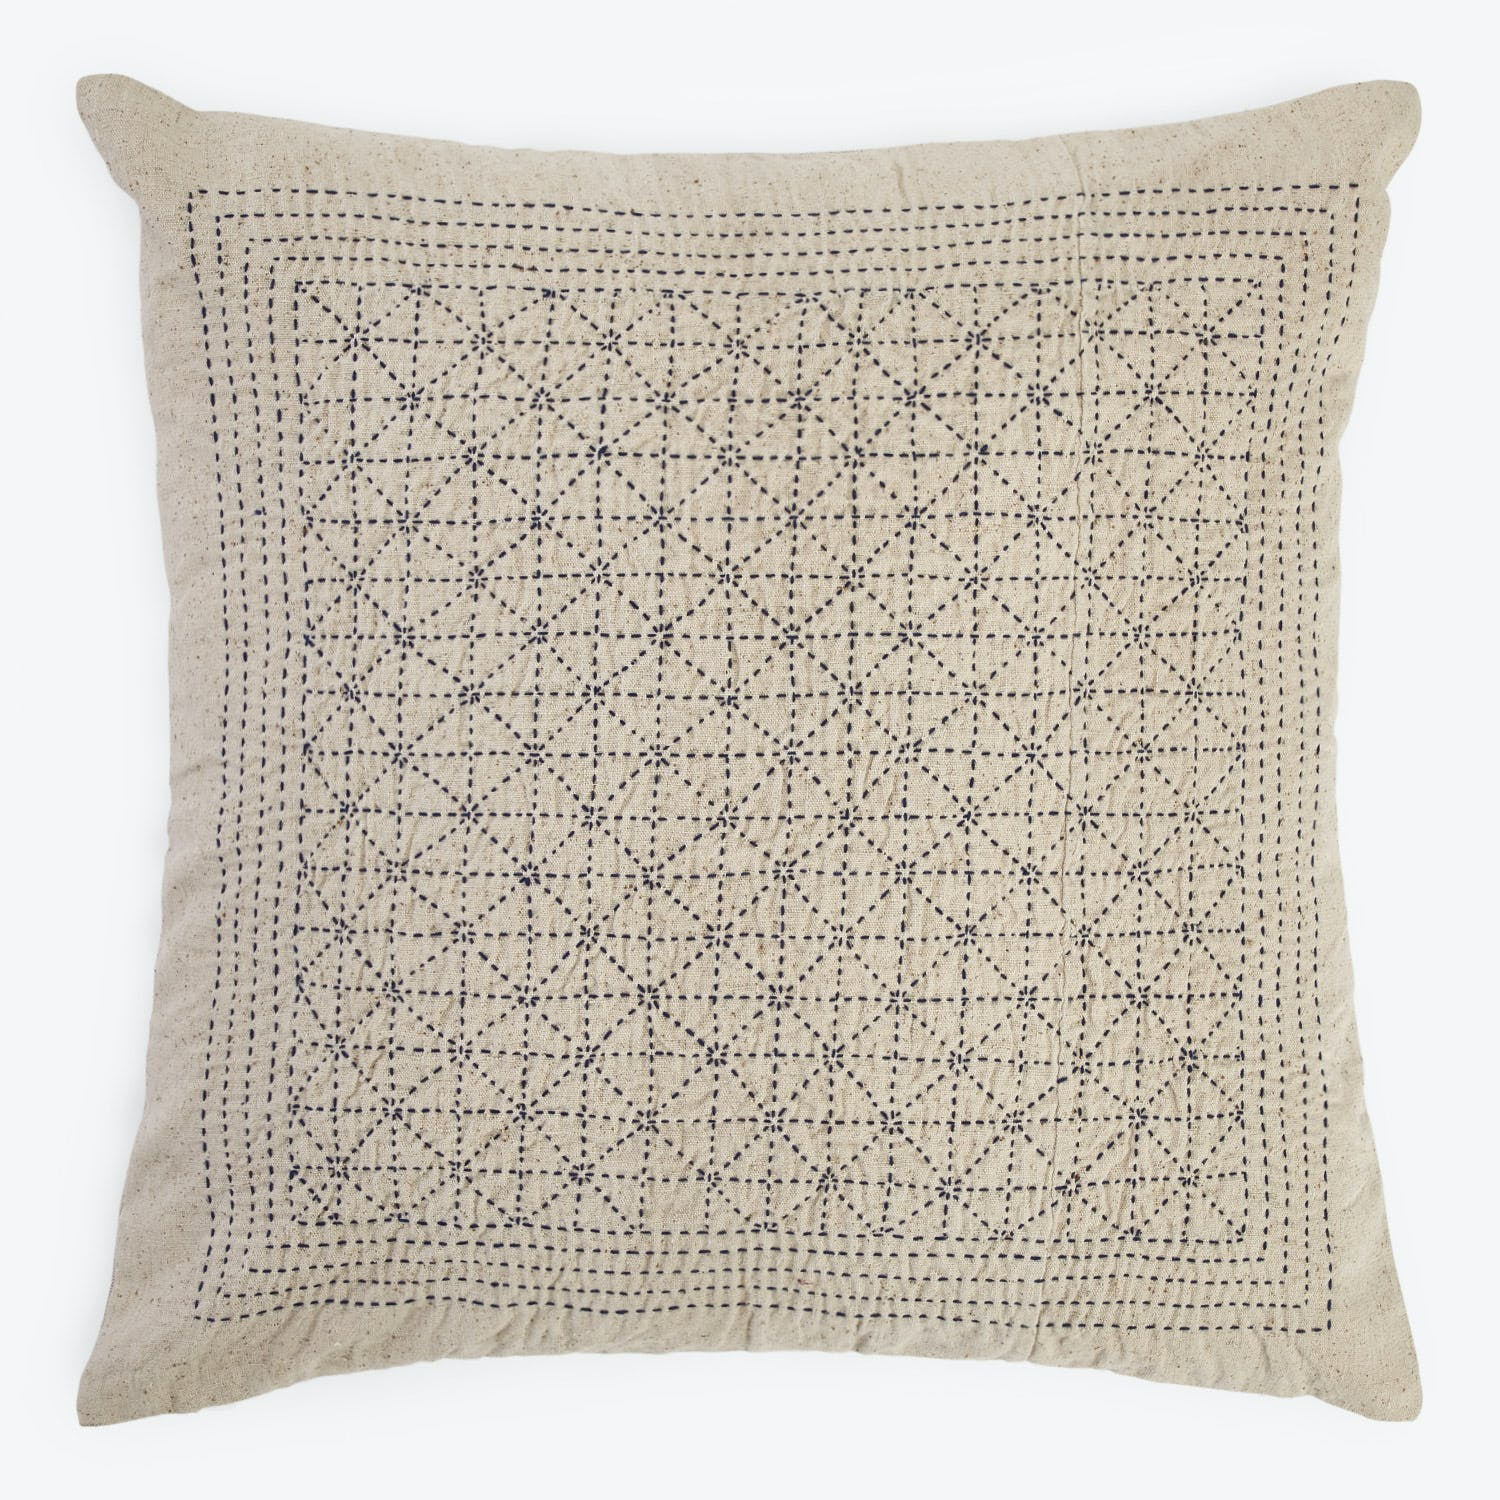 Distant Echo Run Stitch Star Pillow White